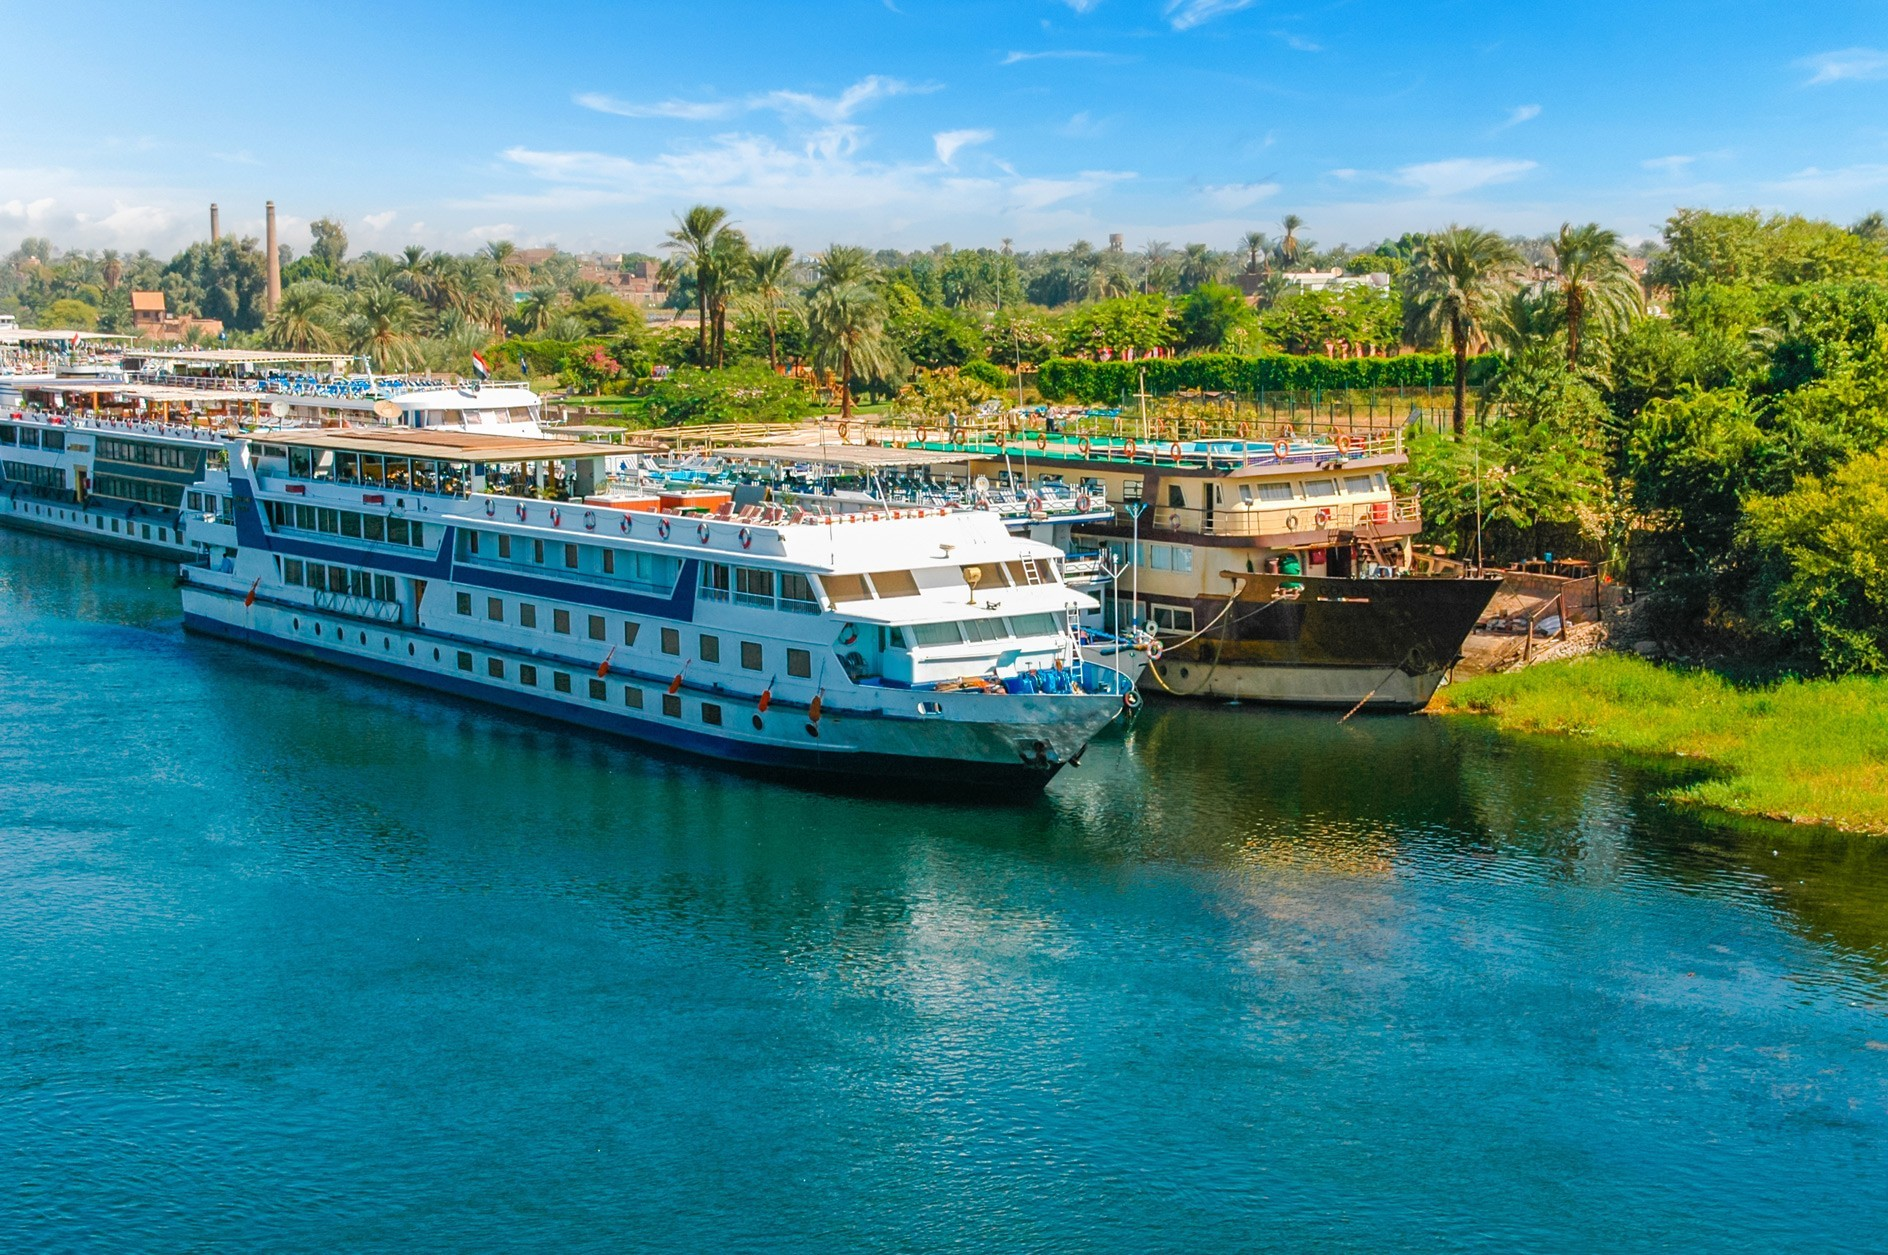 Egypt Nile Cruises Packages Aswan / Luxor 4 Days tour